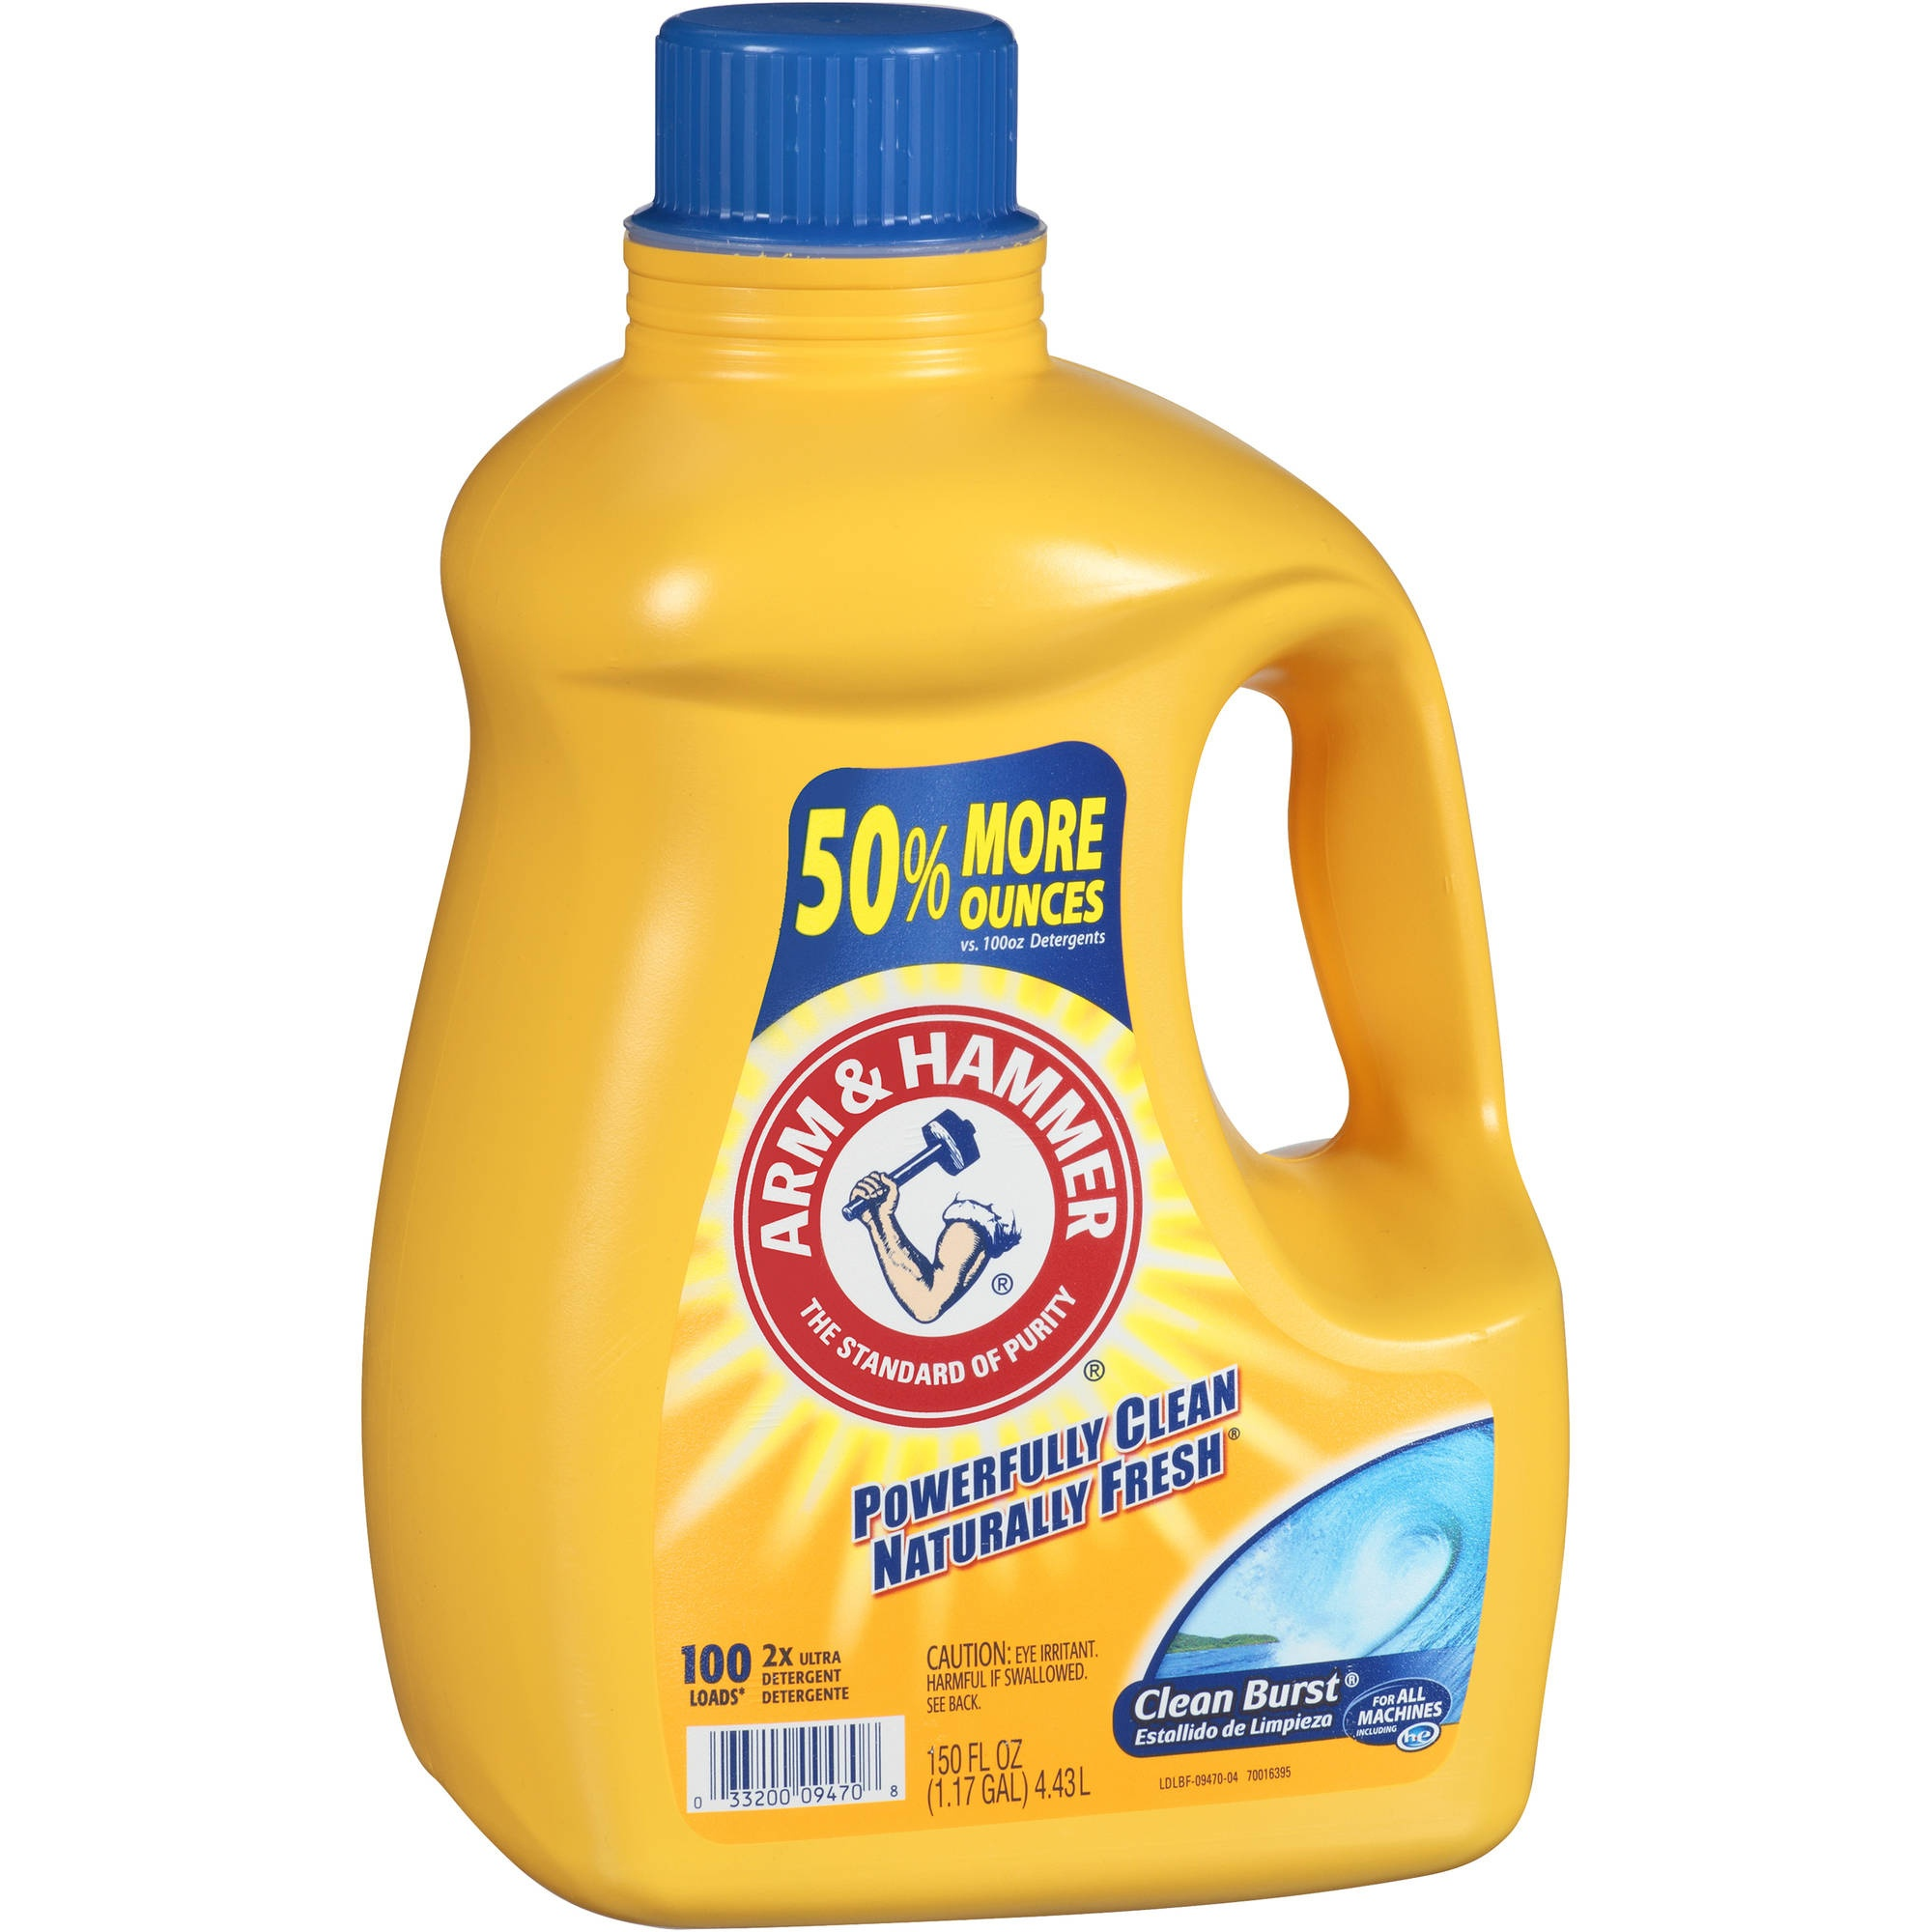 Cvs: Arm & Hammer Laundry Detergent Only $0.98! - Money Saving Mom - Free Printable Arm And Hammer Laundry Detergent Coupons